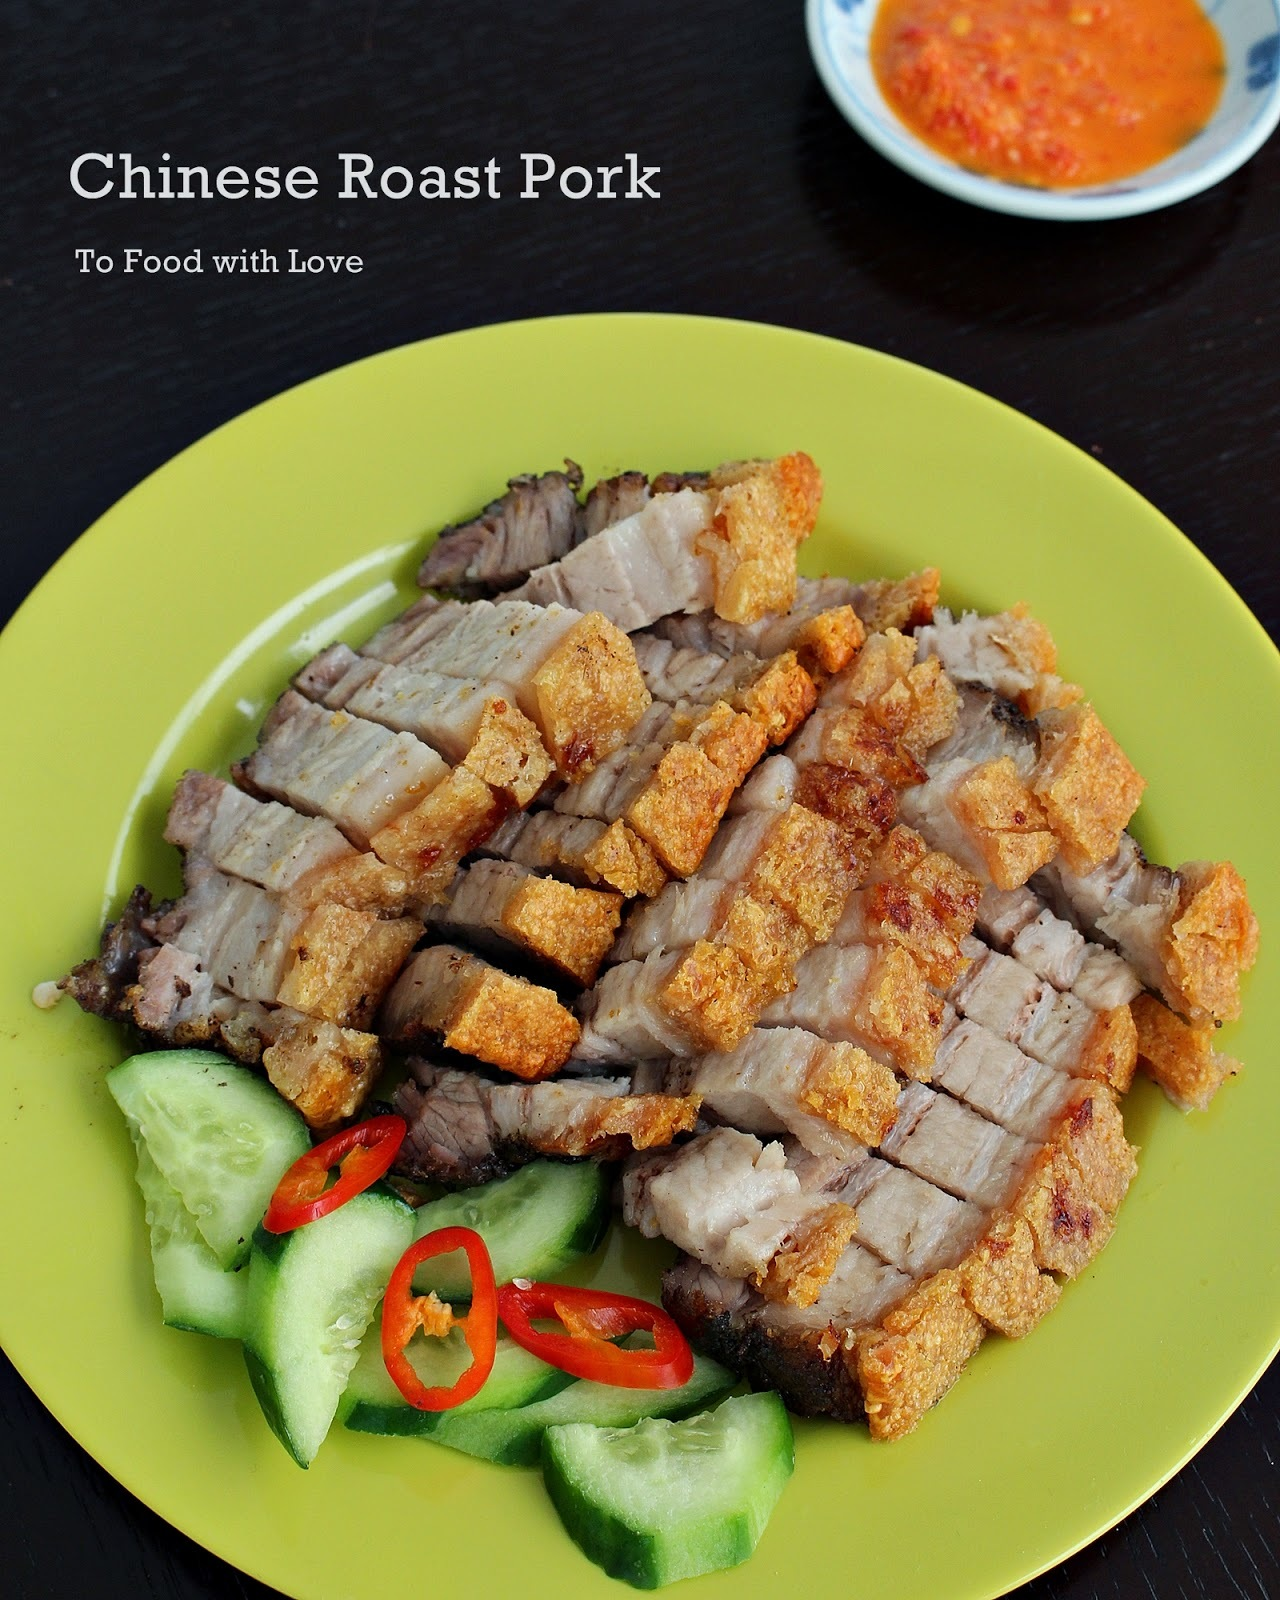 Chinese Roast Pork (Siu Yuk)